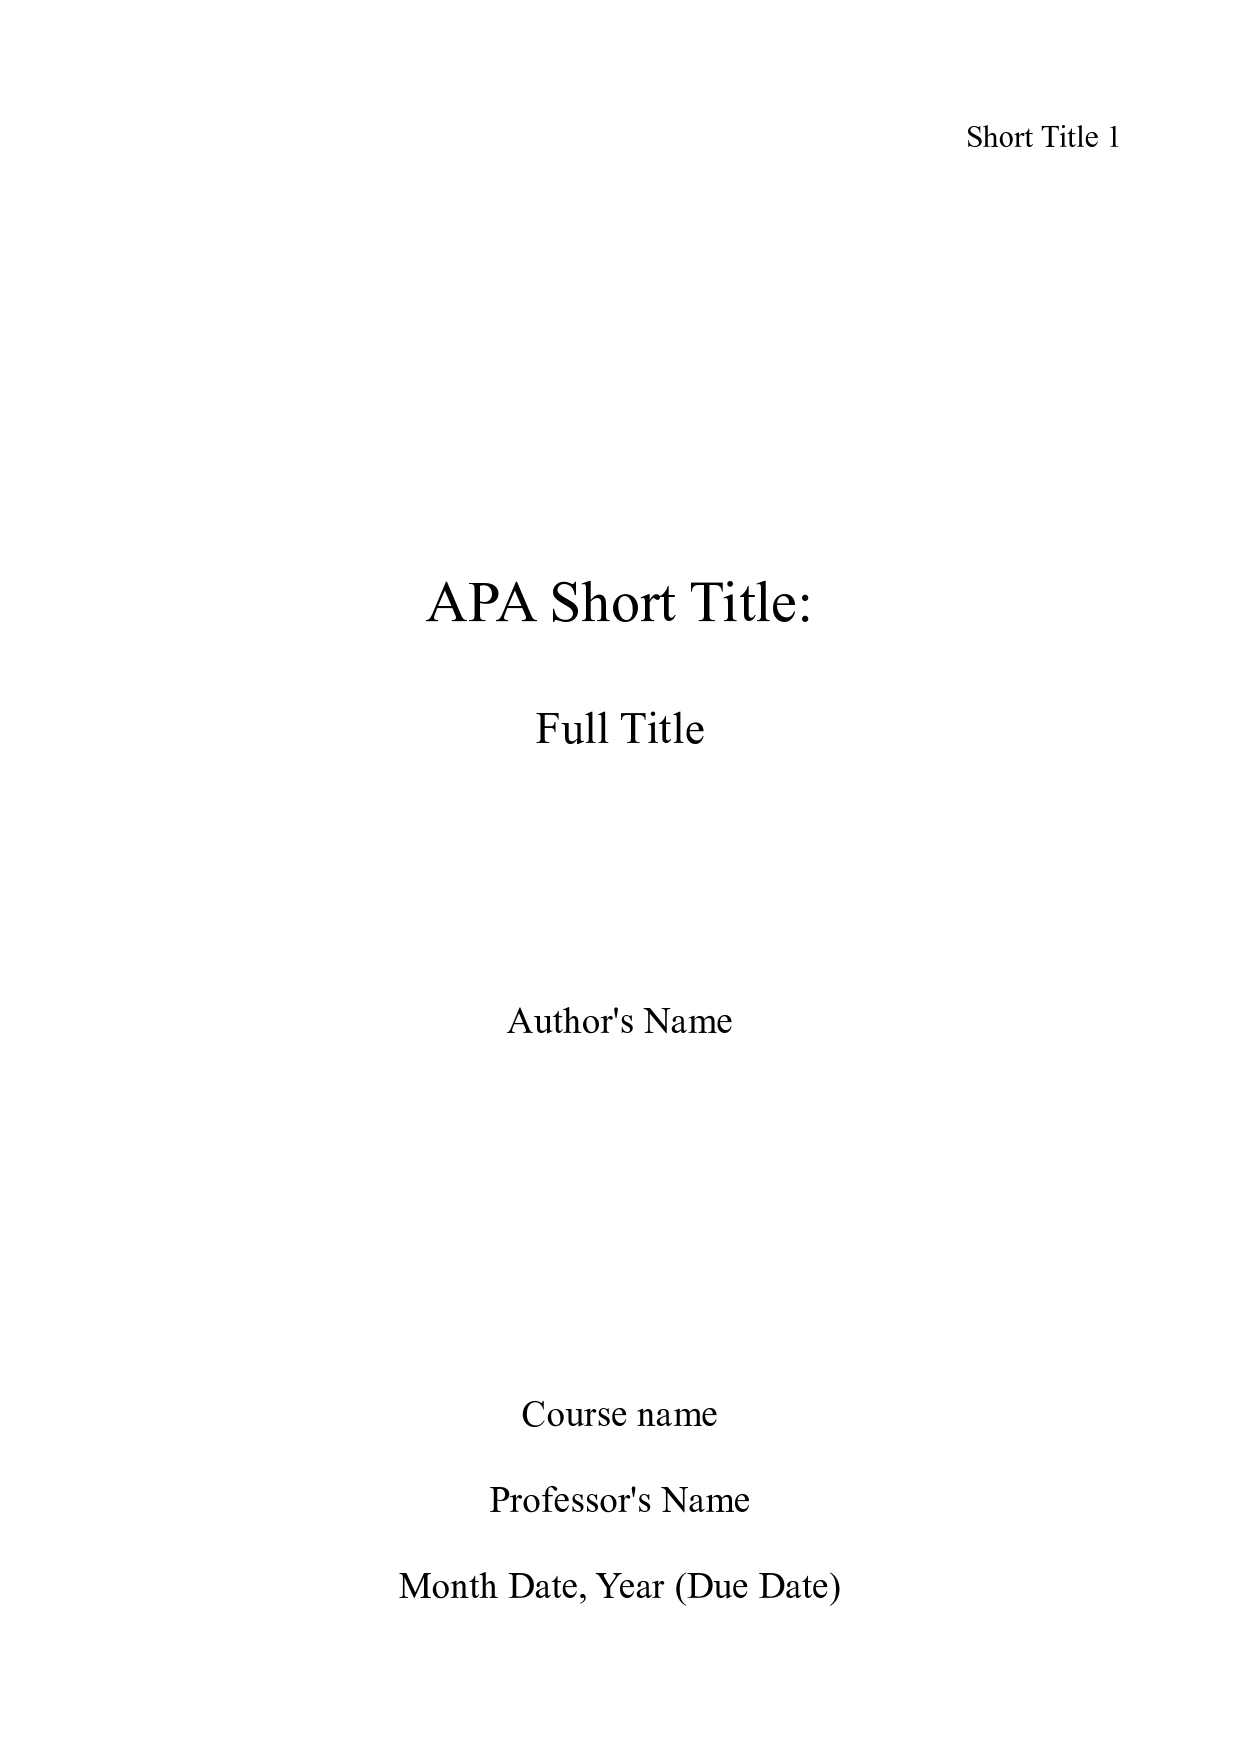 001 Essay Example How To Write Cover Page For An Apa Title Awesome A Contents Reference Mla Bibliography Full